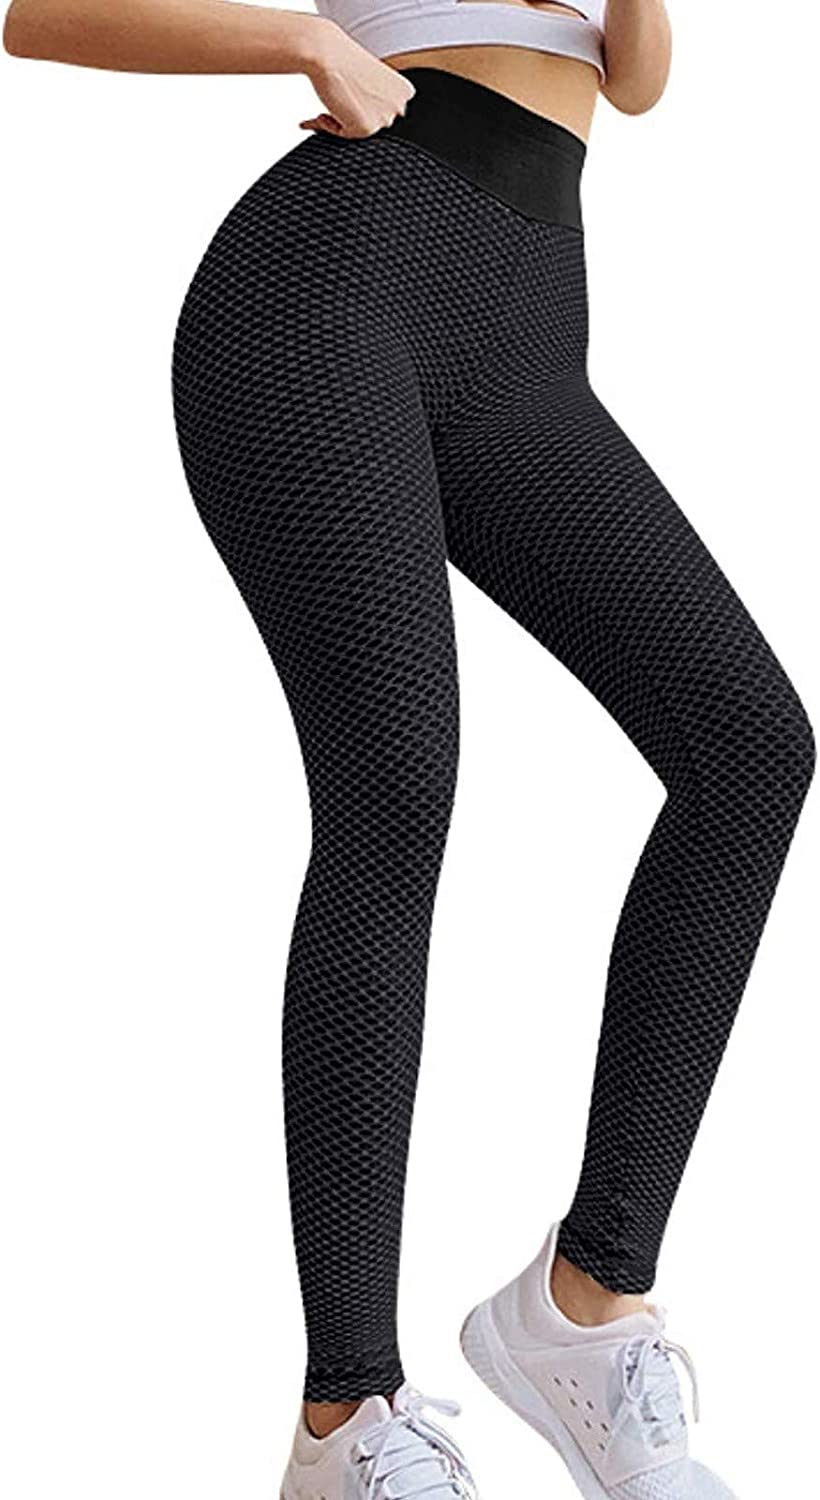 High Waisted Yoga Pants for Women Workout Tummy Control Pants Anti Cellulite Butt Lift Tights Famous TIK Tok Leggings